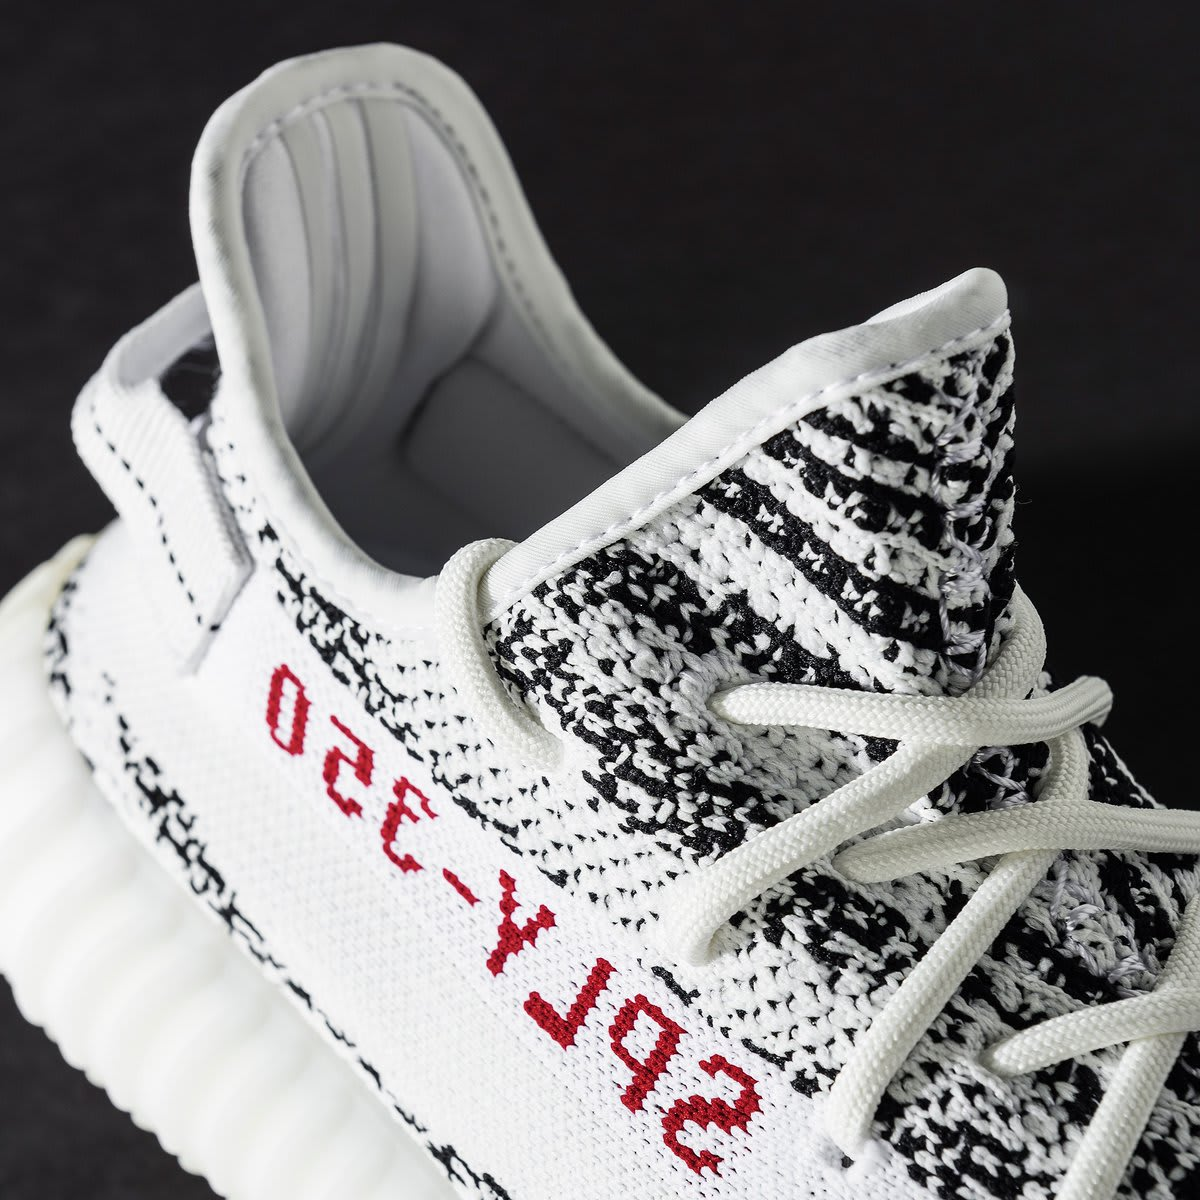 Official Store List For The Cheap Adidas Yeezy Boost 350 v2 Zebra Yeezy